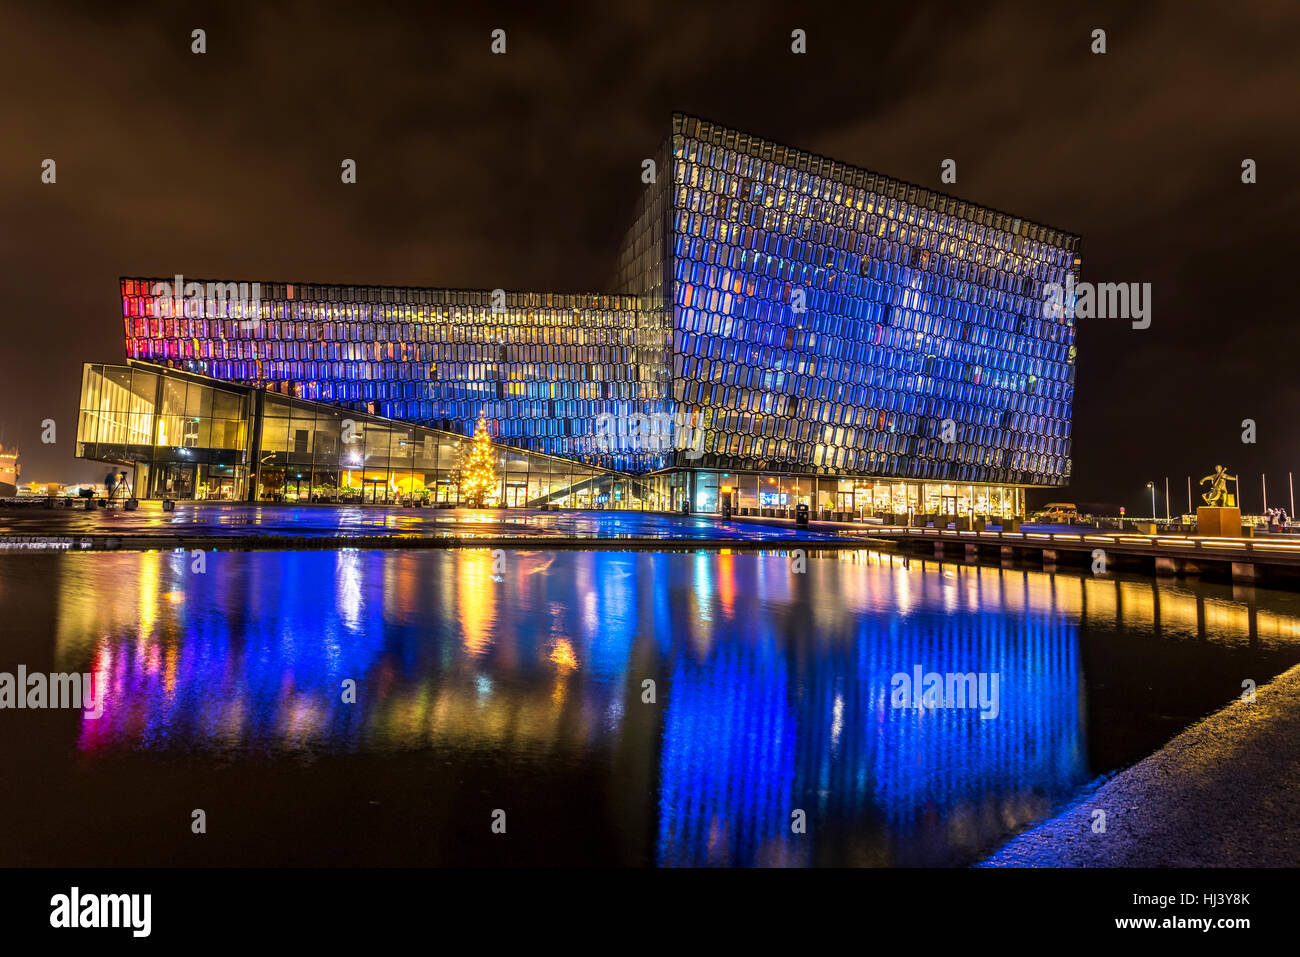 Harpa concert hall in Iceland at night lights up in multiple colors, reflecting on a pool at the front of the building. - Stock Image